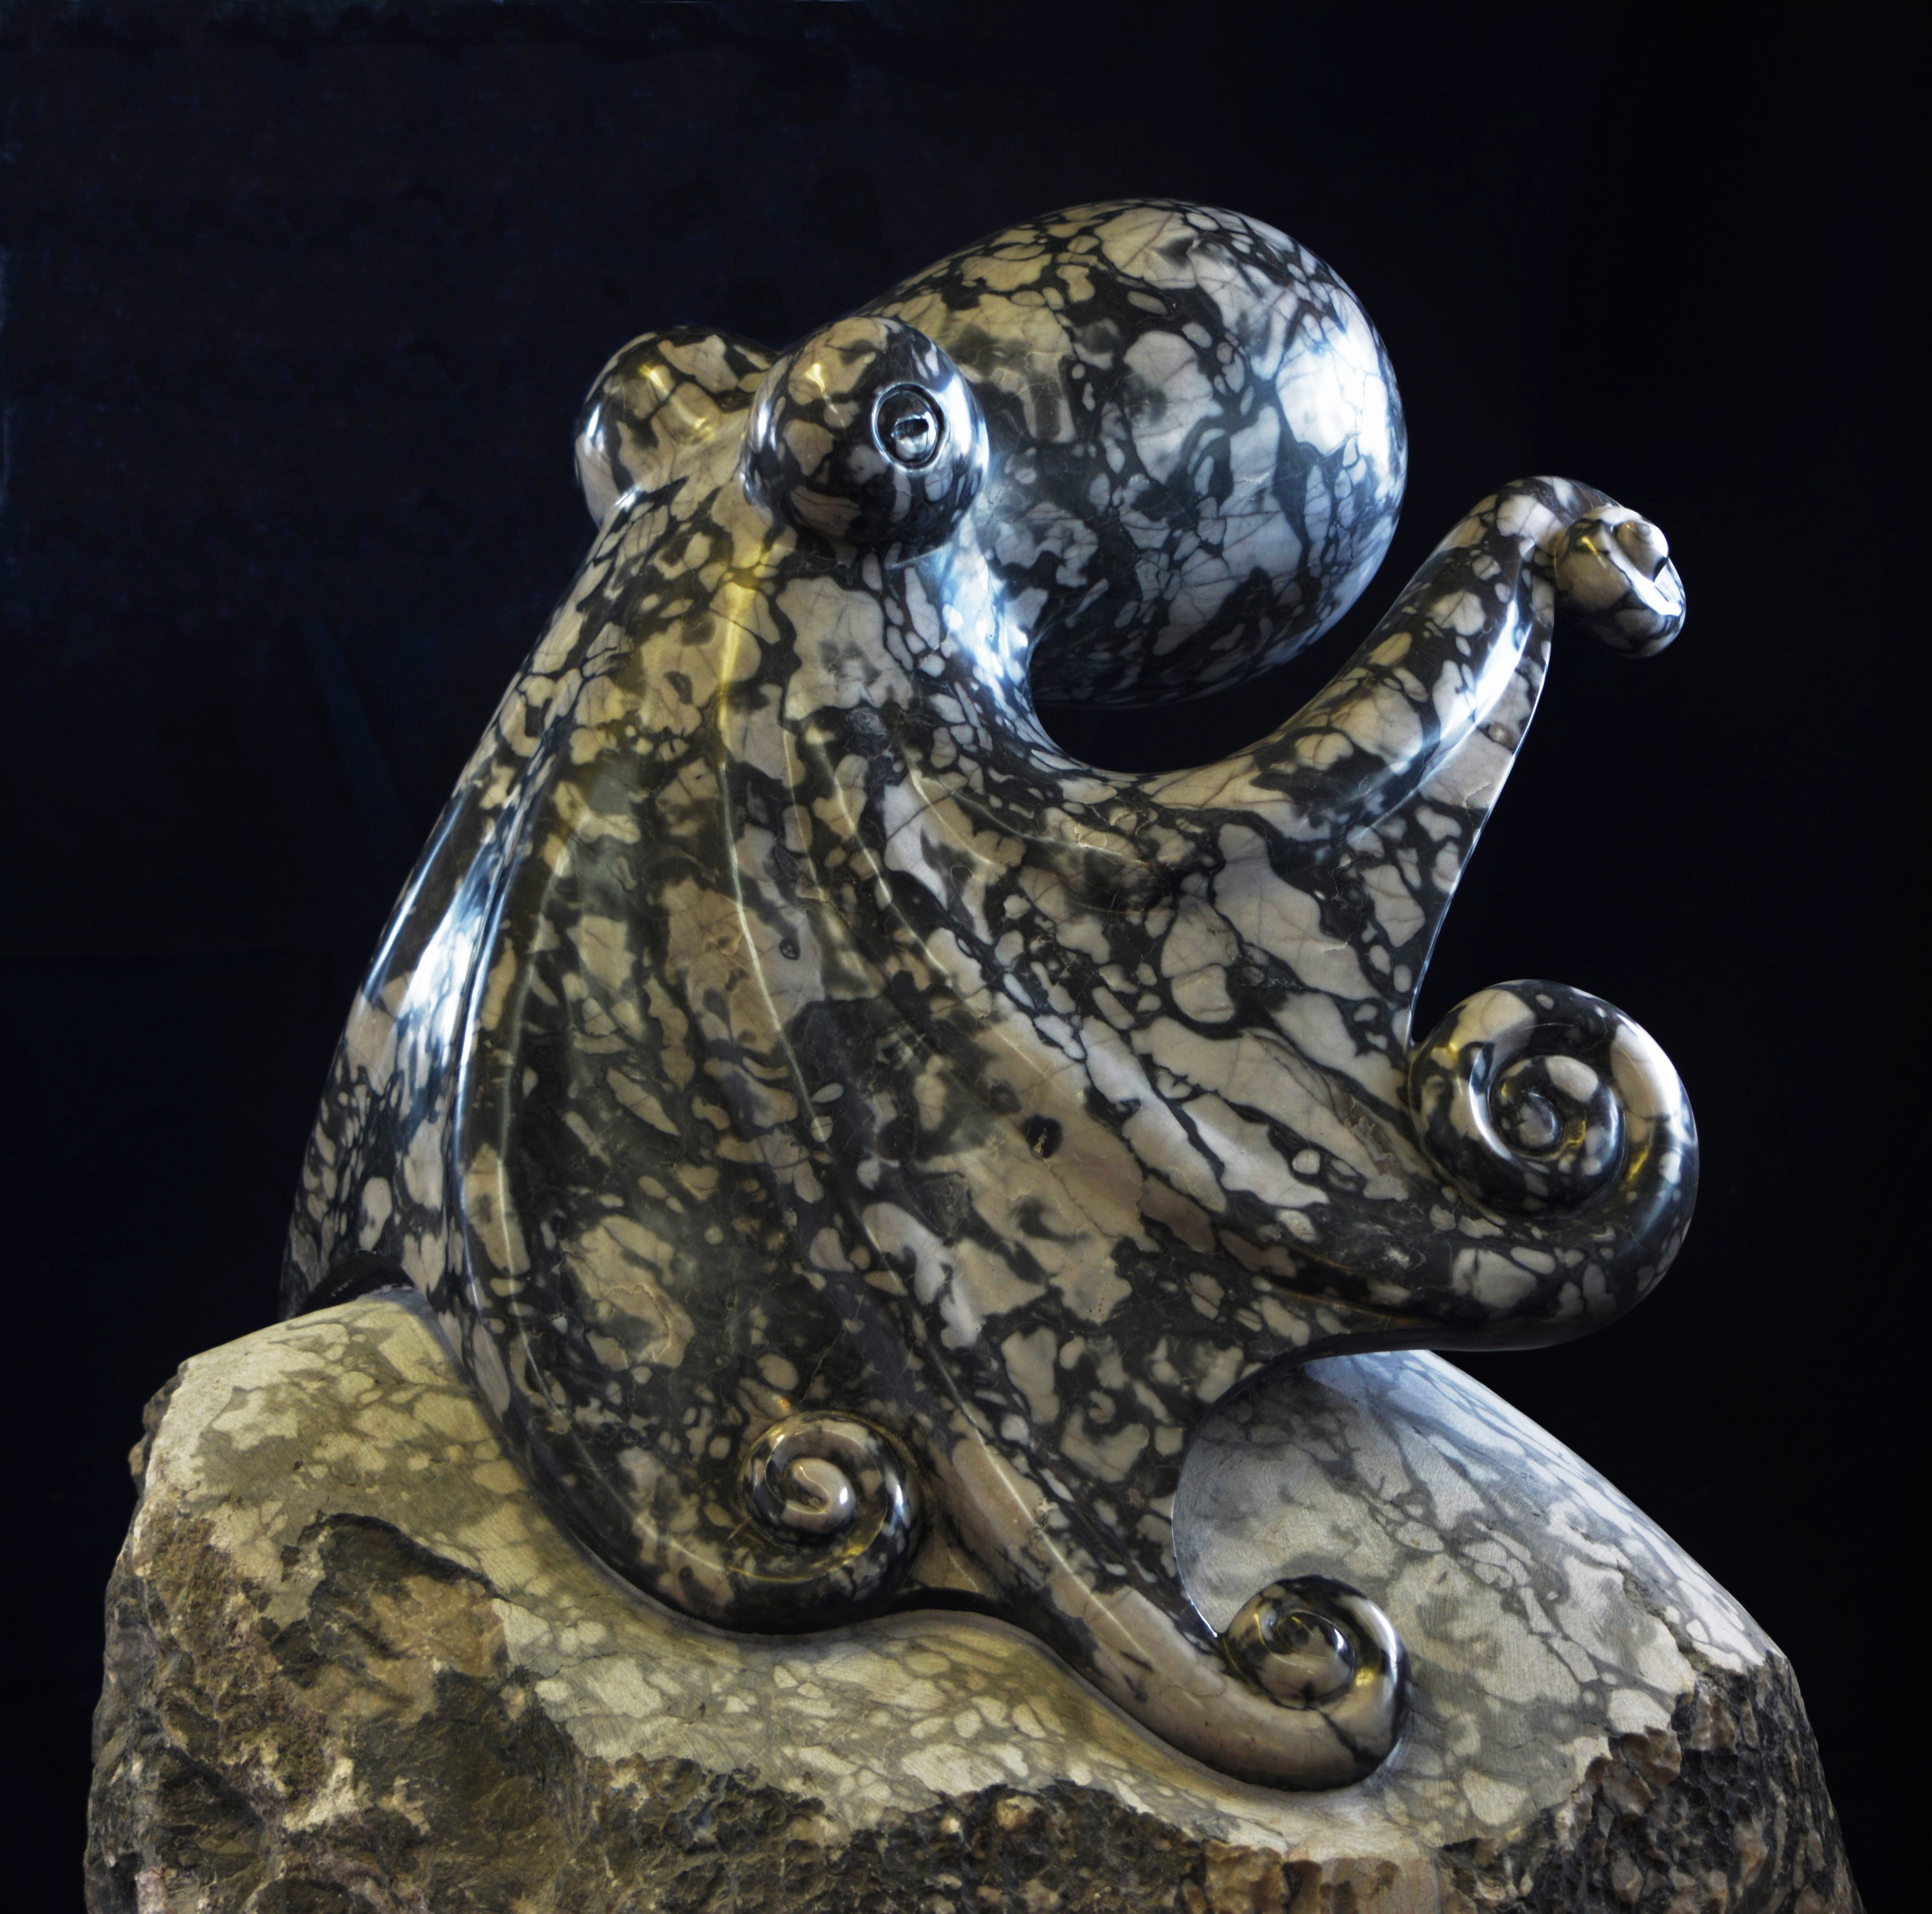 OCTOPUS ESCAPE BC marble 2 feet tall 2017 by Daniel Cline